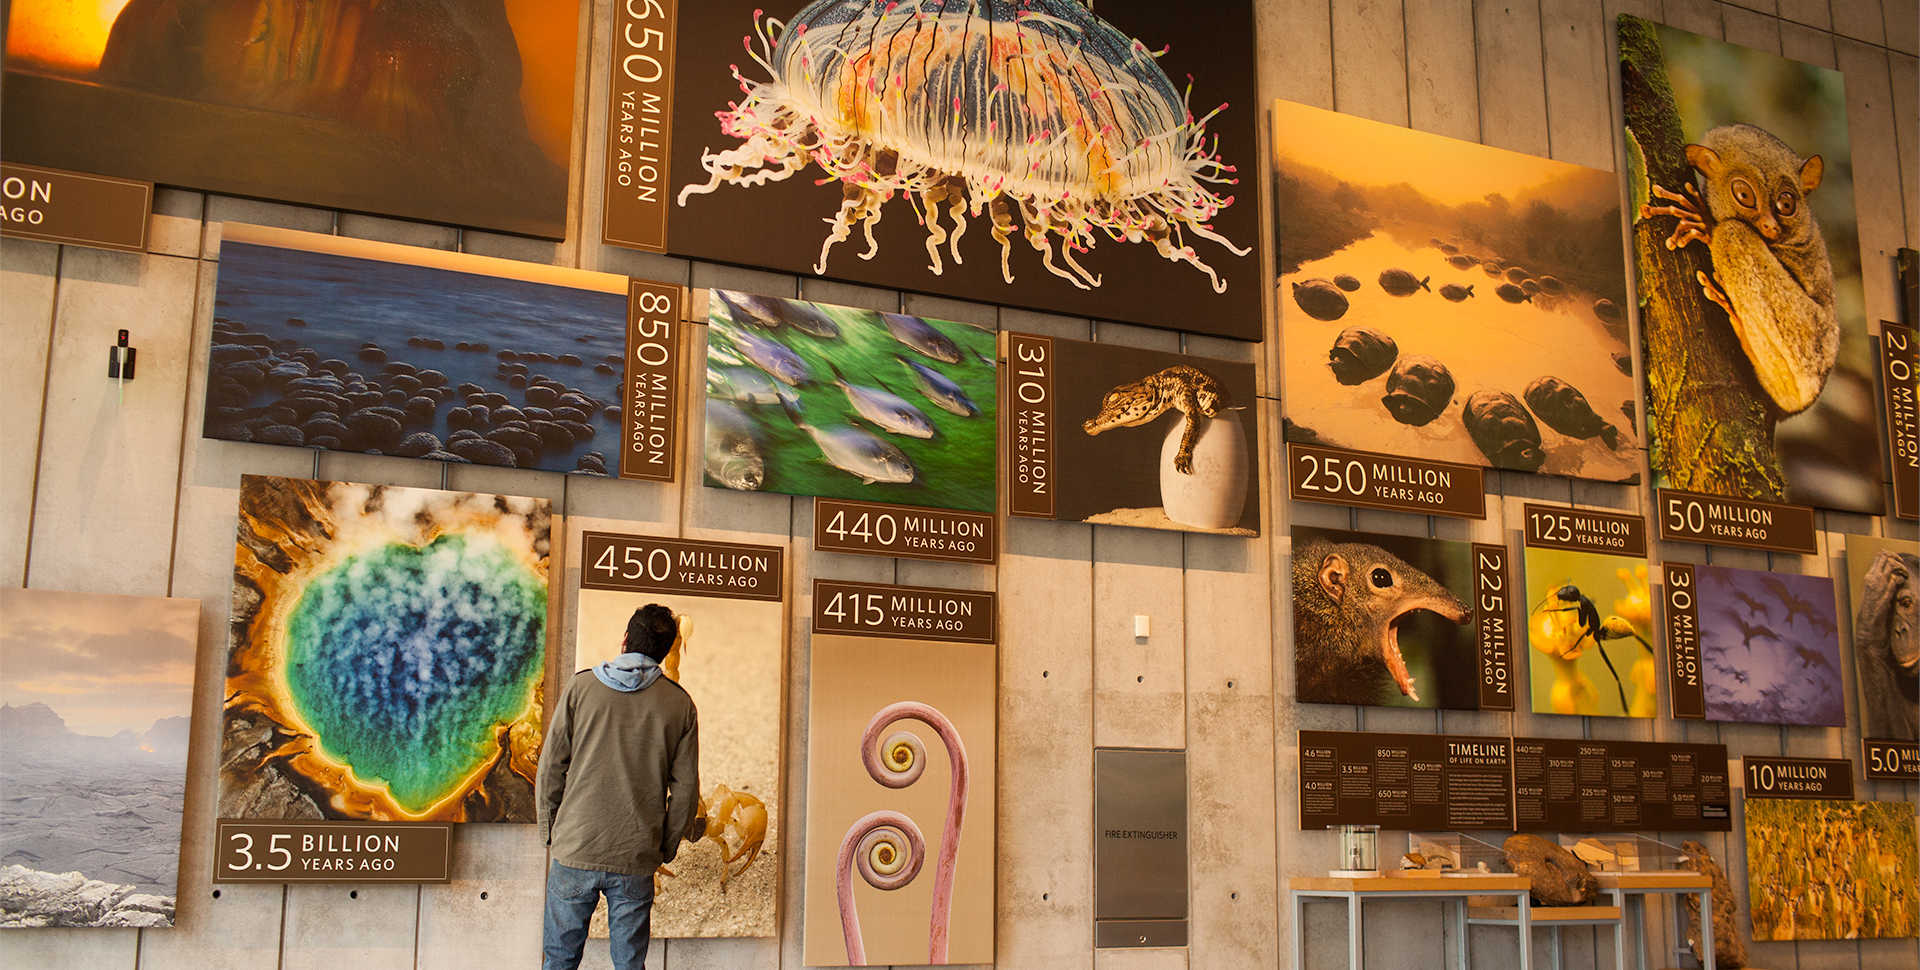 A striking visual timeline of the evolution of life on Earth fills one massive wall in the Kimball Natural History Museum.